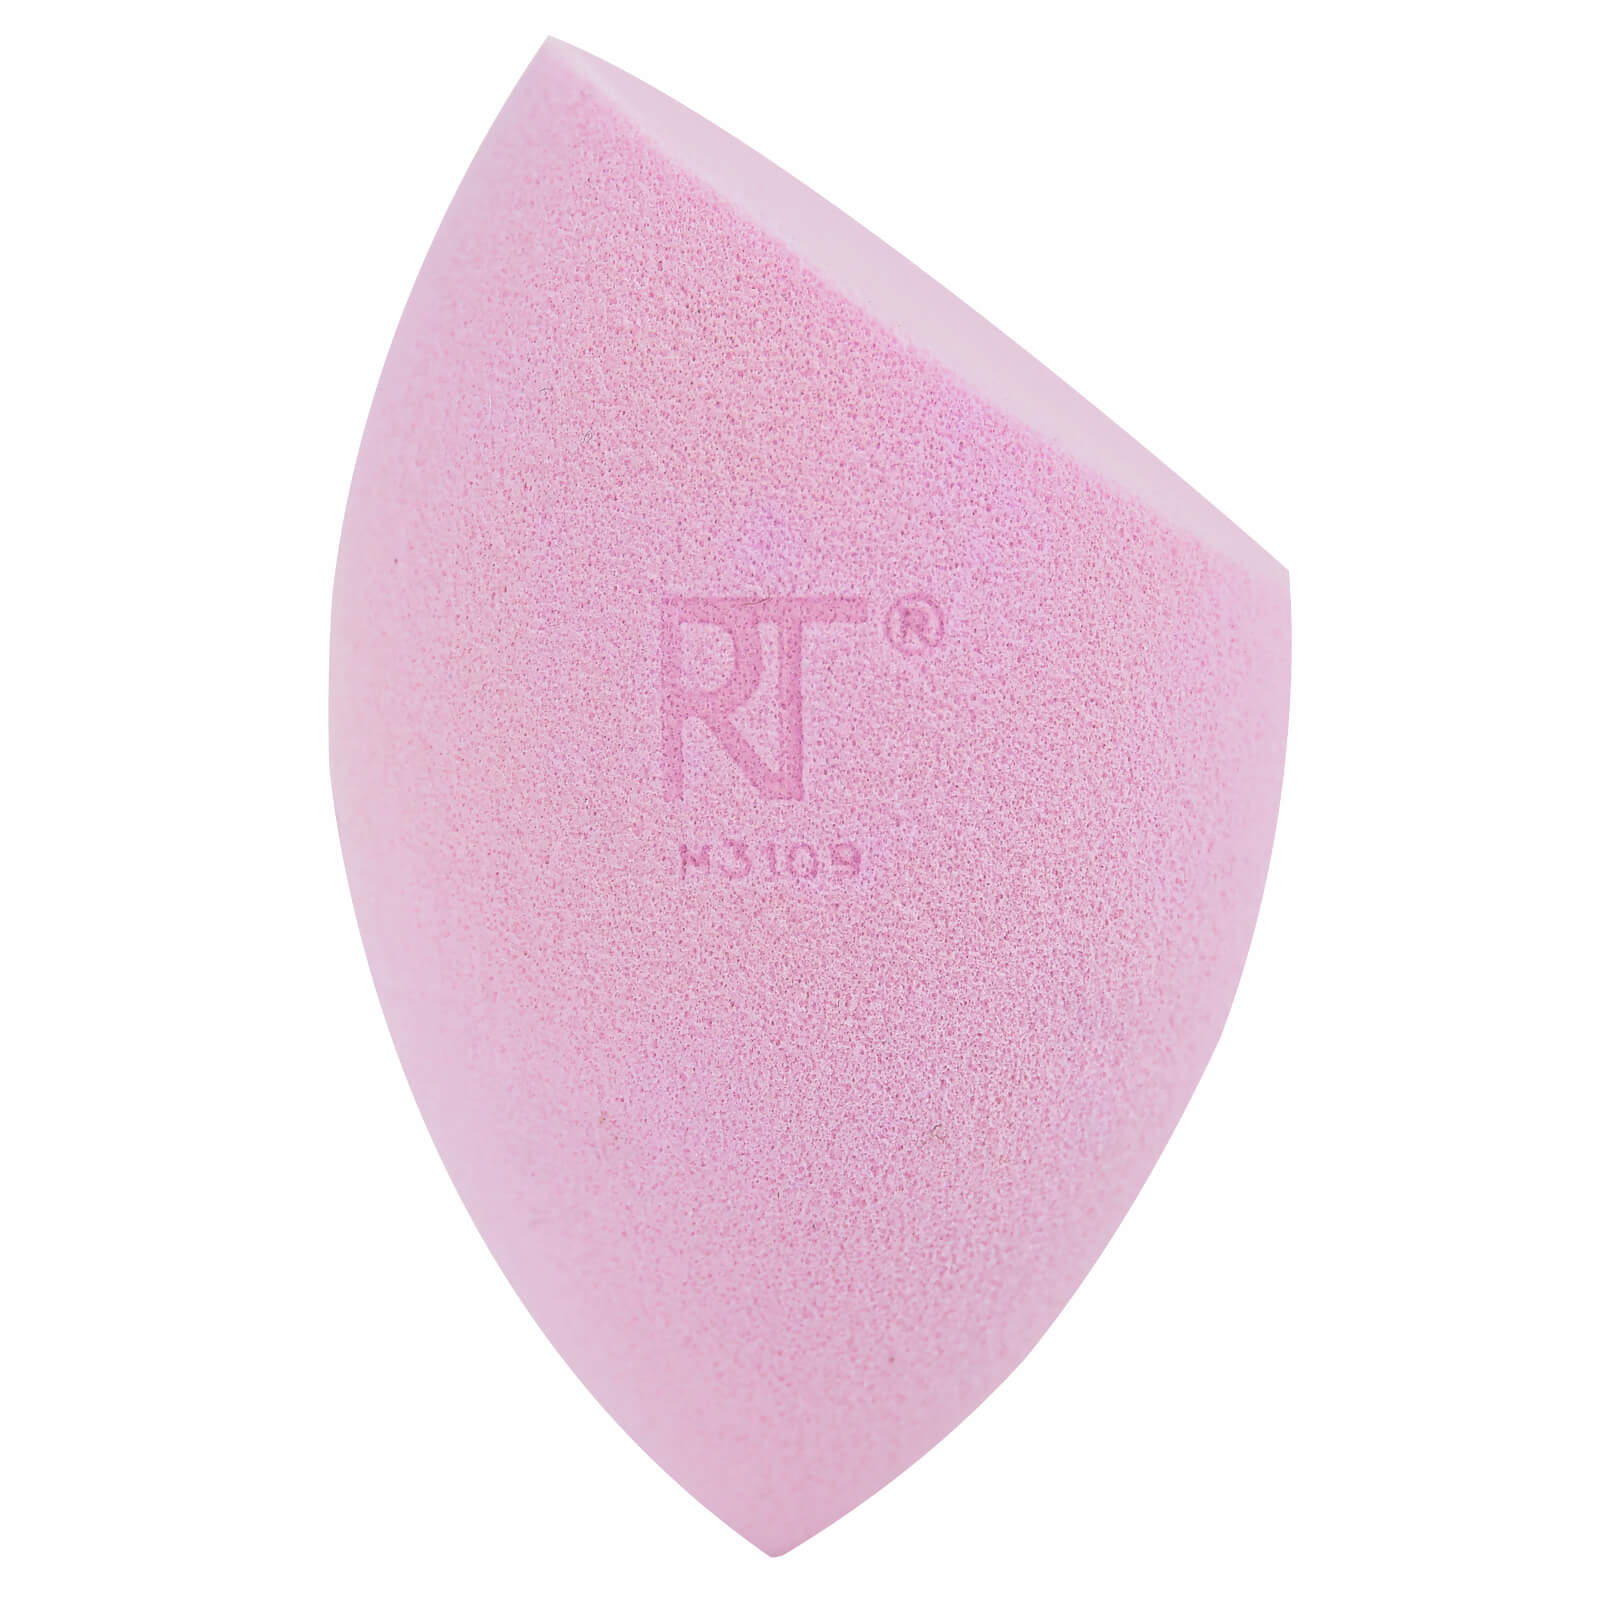 Real Techniques Pastel Rainbow Miracle Complexion Sponge